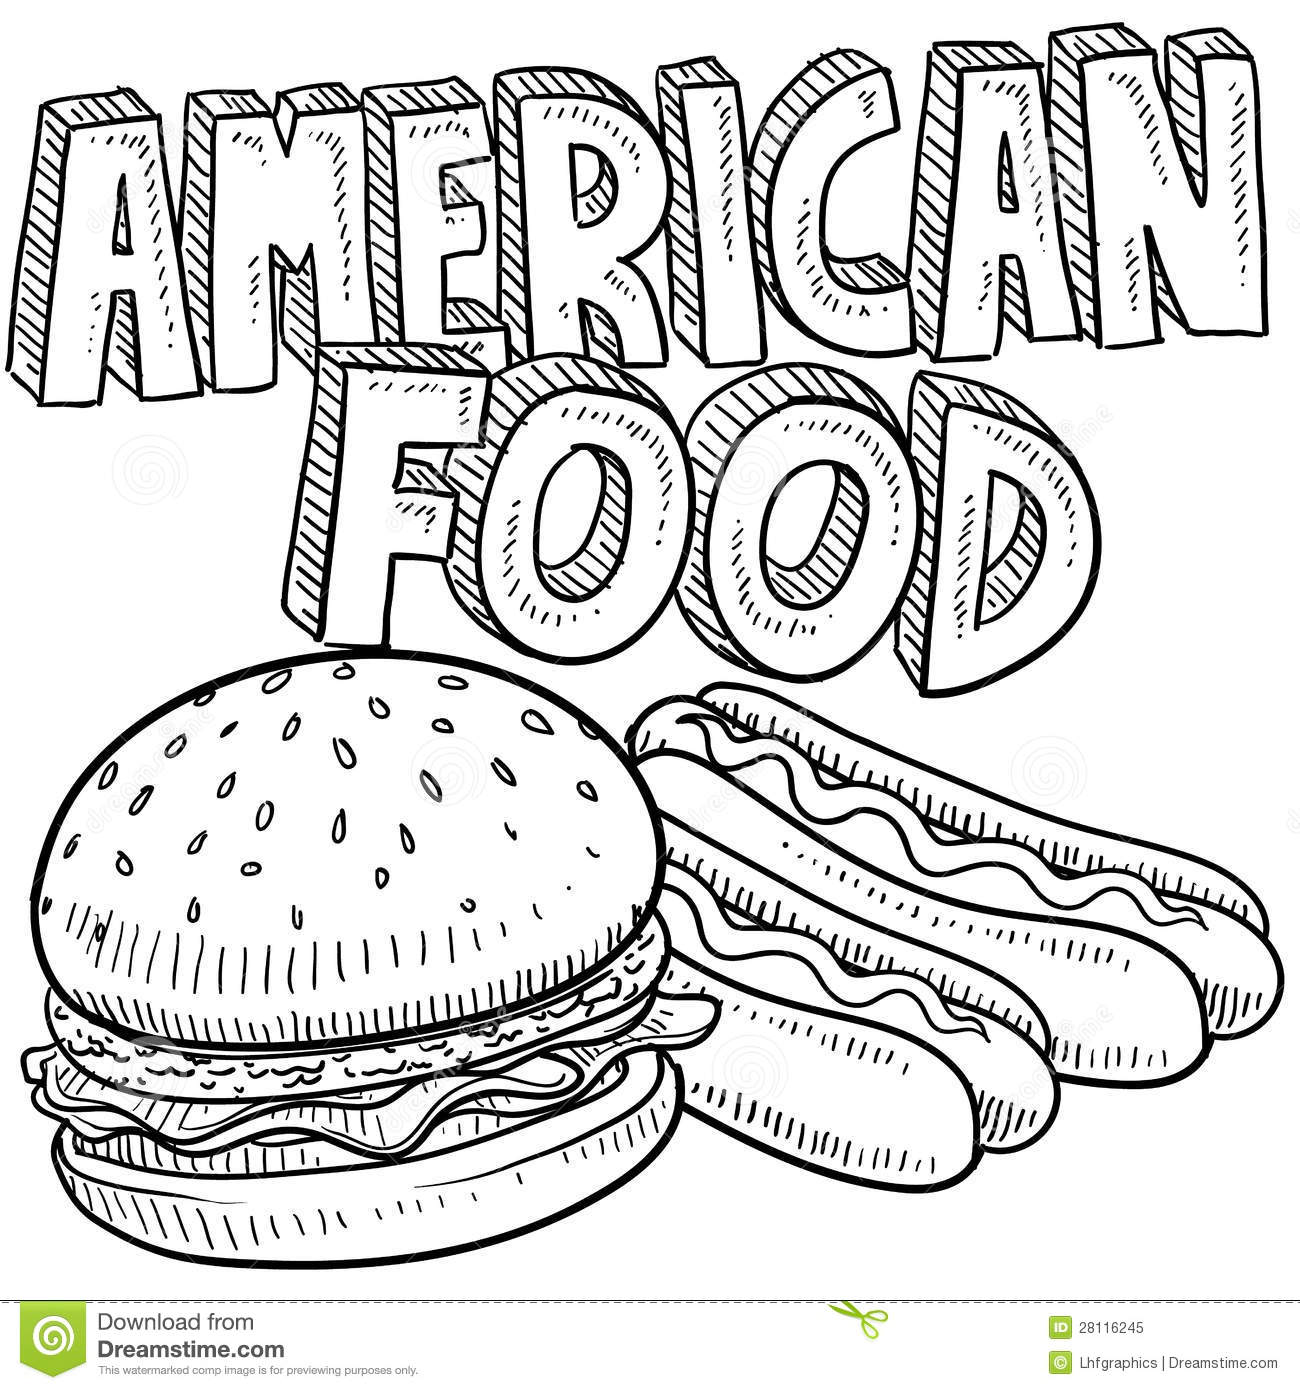 America Food Sketch Stock Vector. Illustration Of Drawing - 28116245